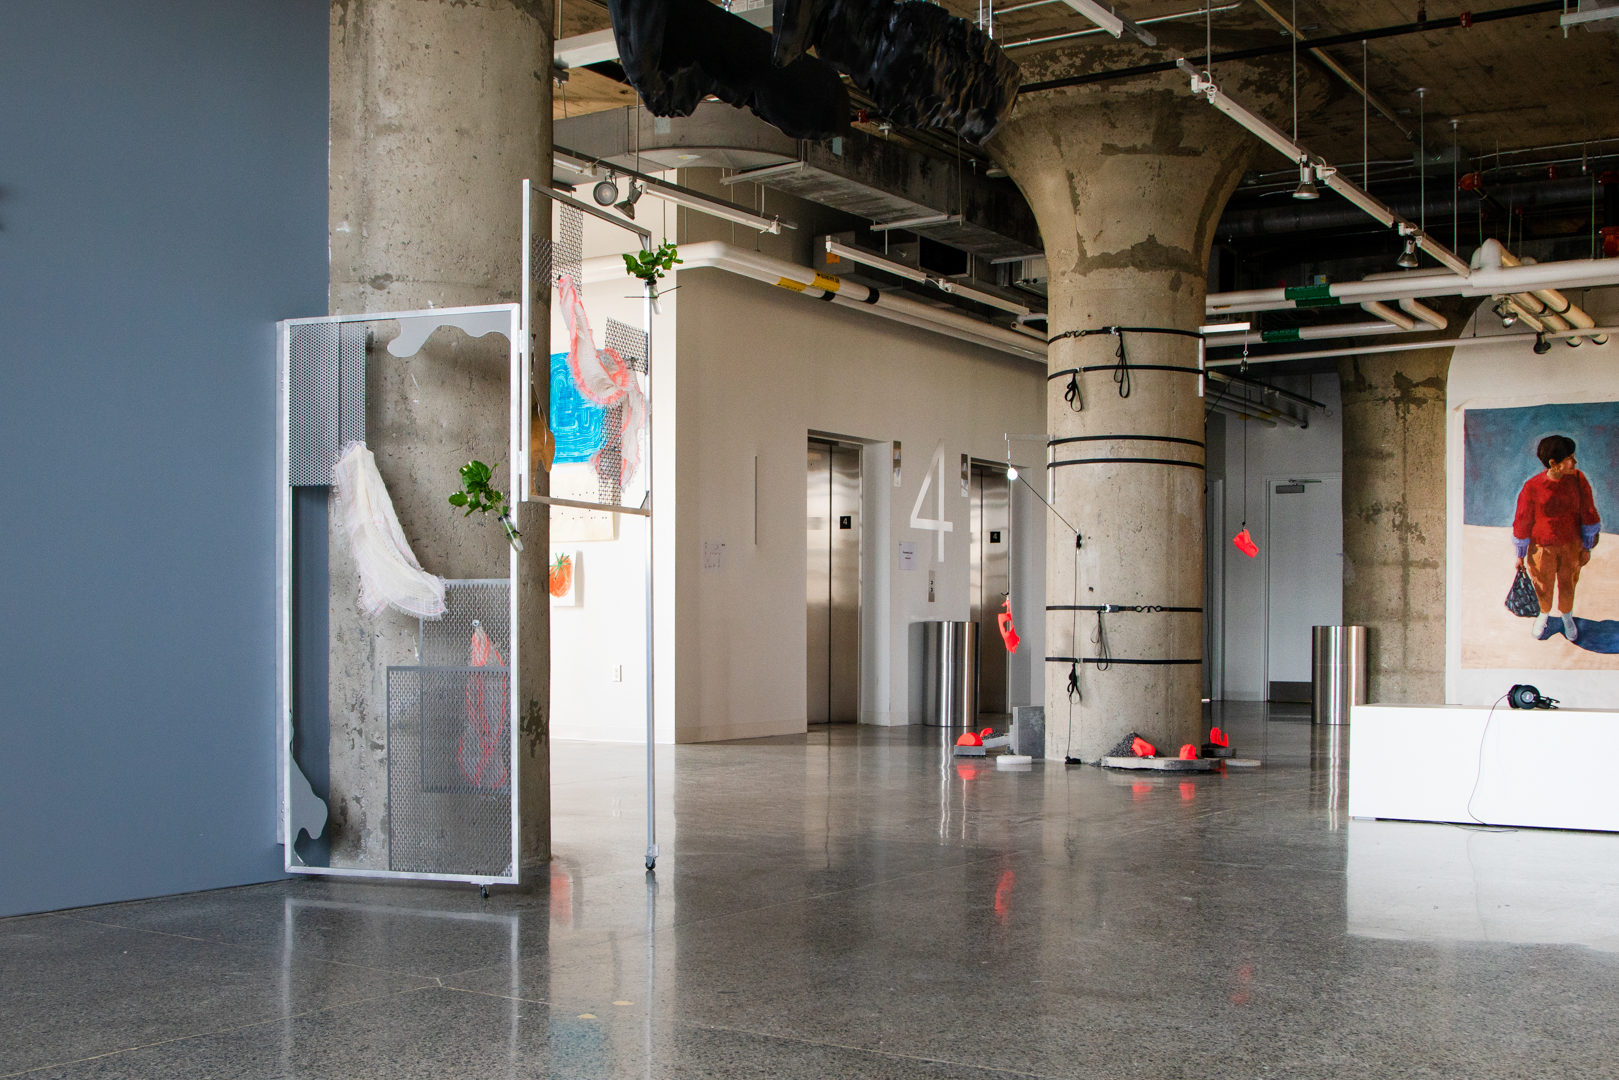 From left to right, on a structural grey column, a sculptural assemblage by Dreifelds using an alumninum door frame, wire mesh scraps, bandages, and plants. On anoteher column to its right, another assemblage by the same artist made of black strapts, neon sculptures of body parts, and pulleys. A mural-like painting of a figure in red sweater by Olou. The white bench with black headphones for an audio work by Workman reappears.